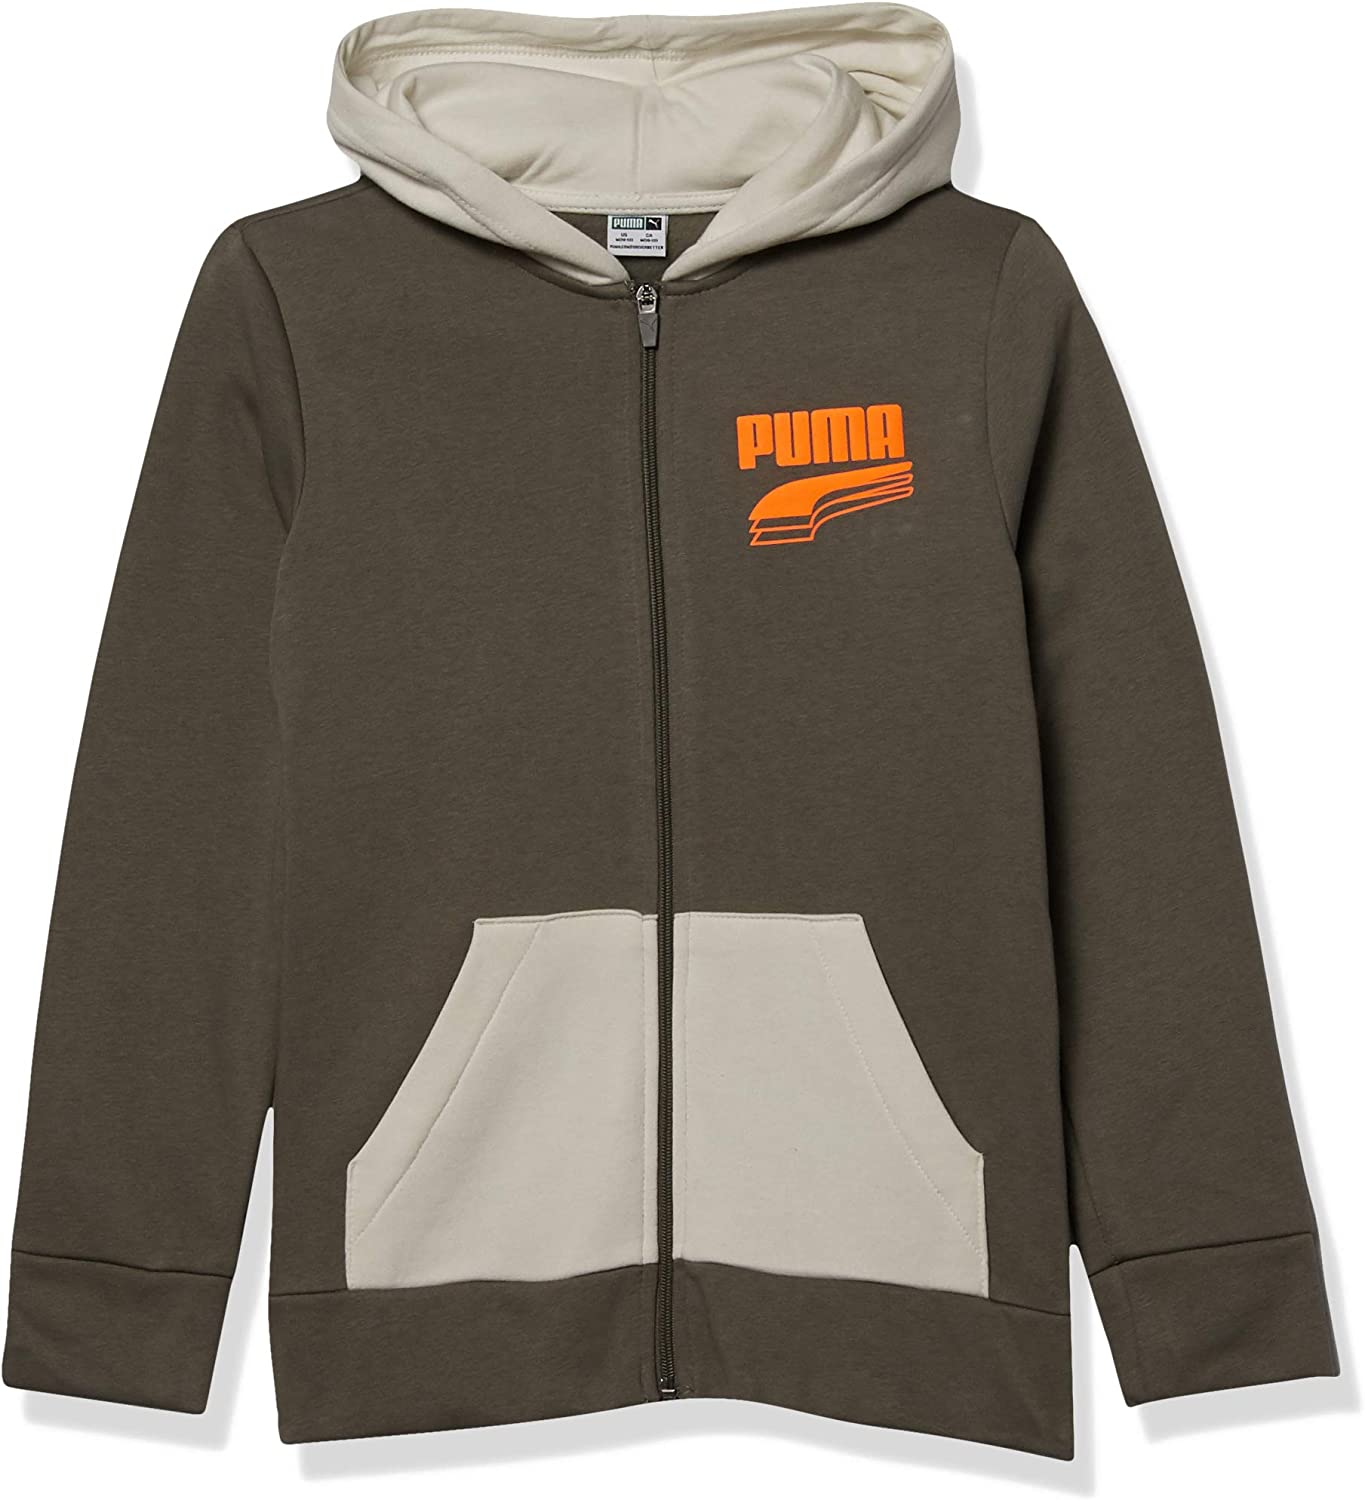 PUMA Boys' unisex Zip Hoodie Special price for a limited time Up